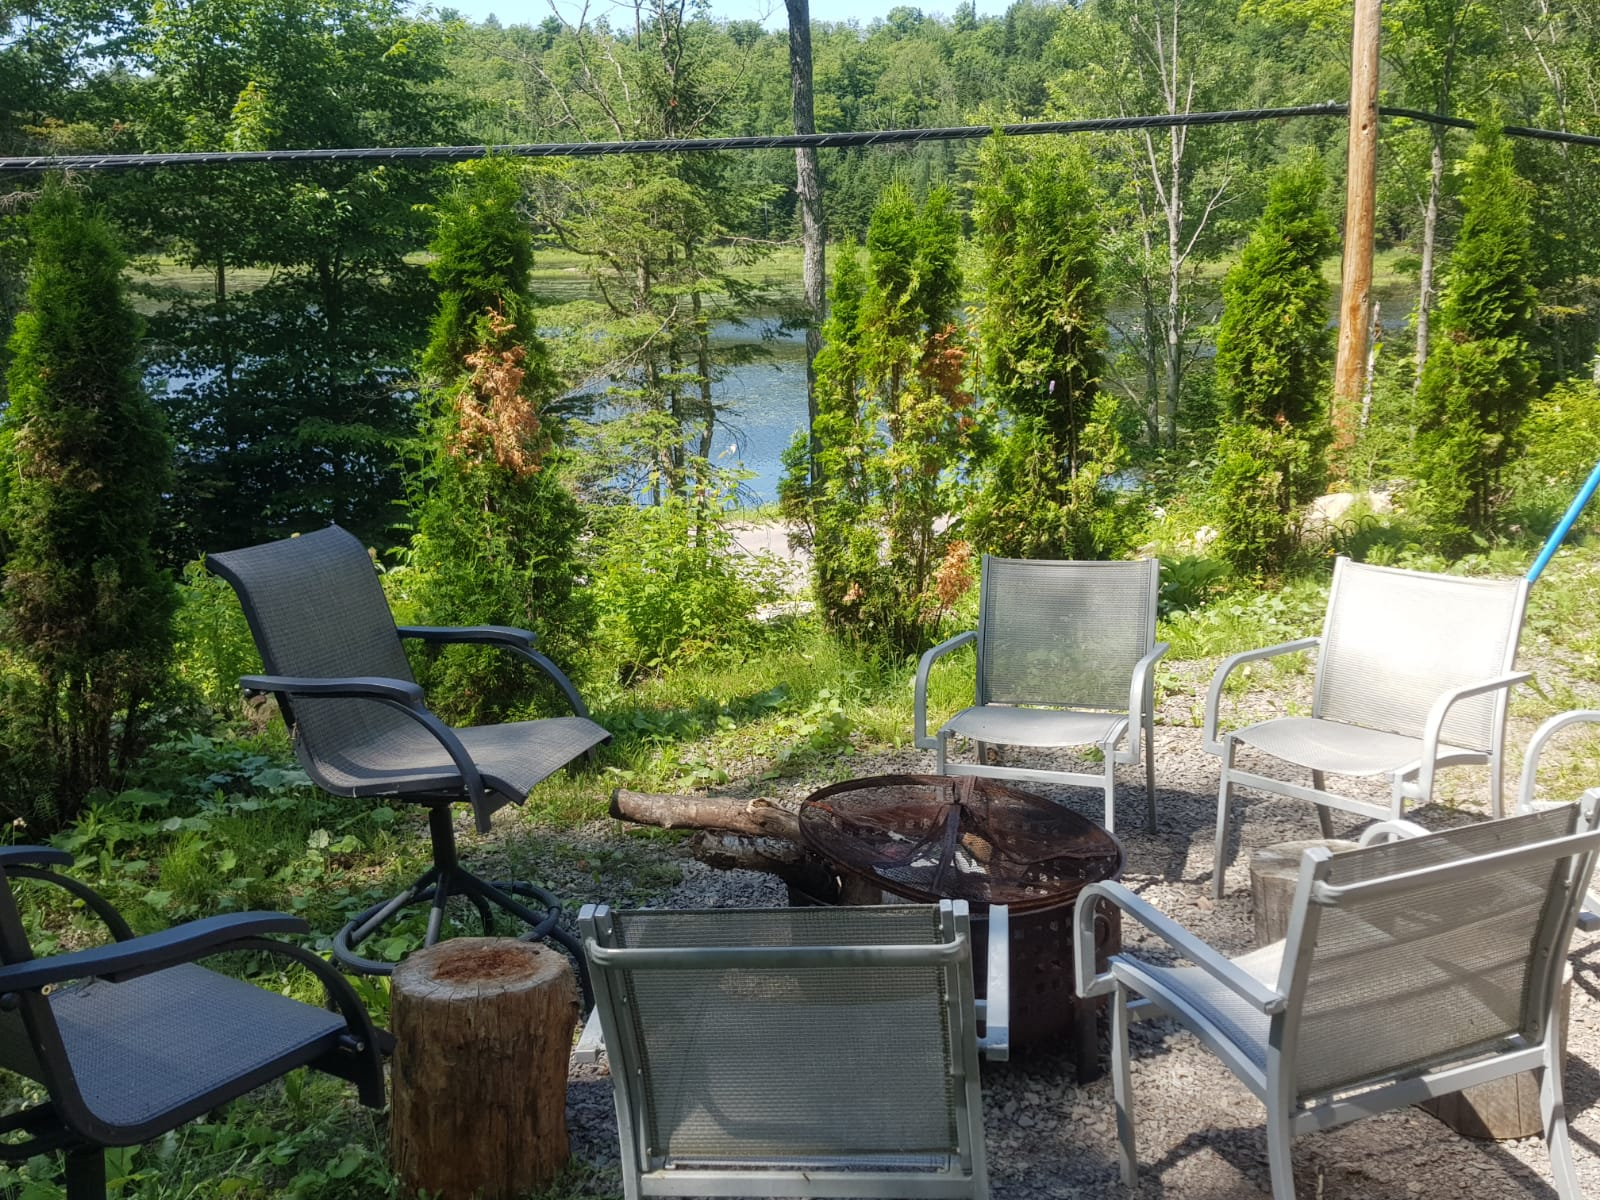 Cottages for rent with 4 bedrooms in Quebec #8